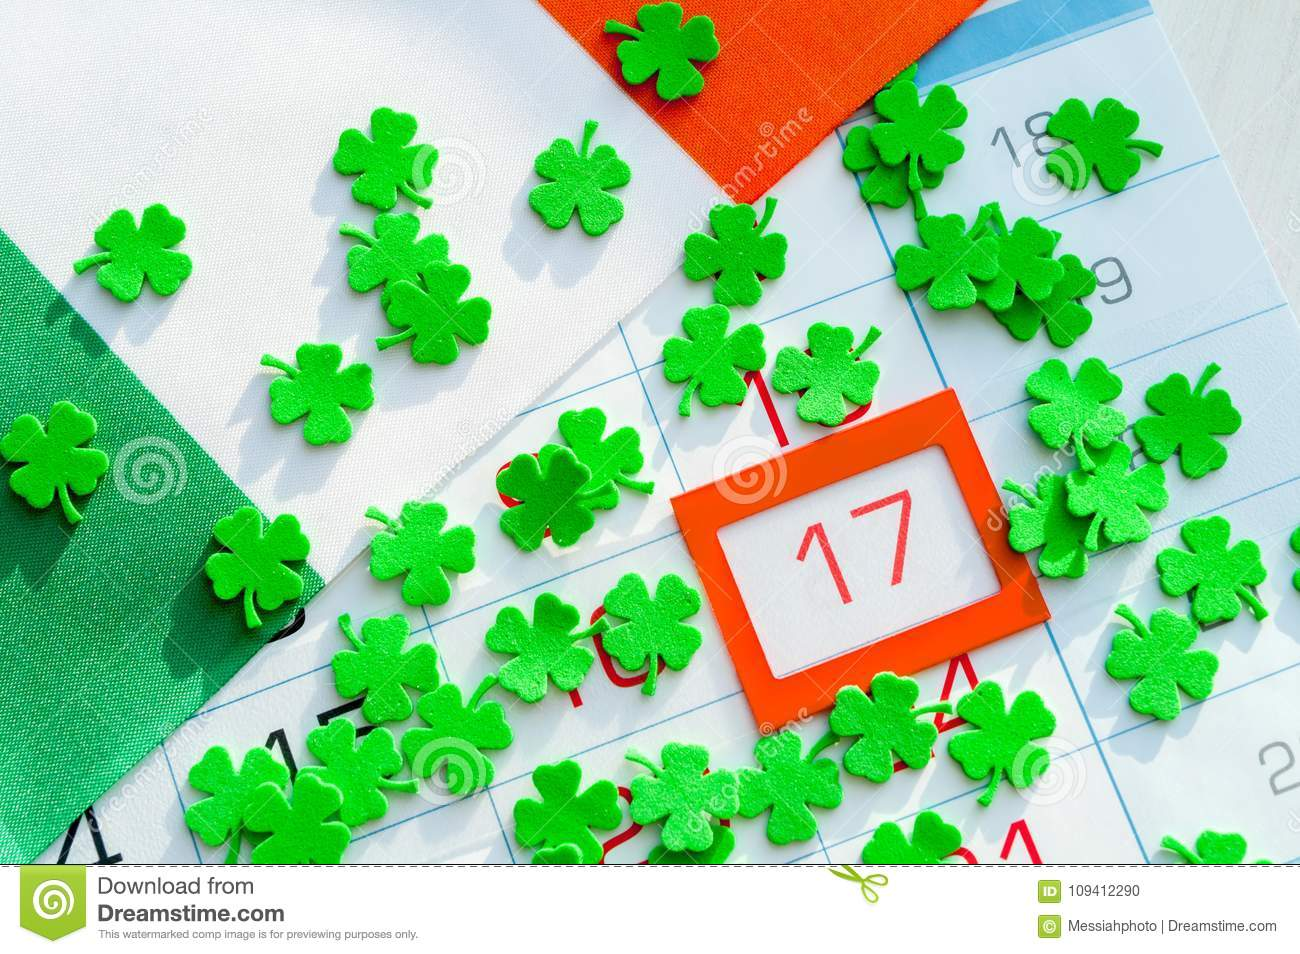 St Patrick`s Day festive background. Green quatrefoils and Irish flag covering the calendar with framed 17 March